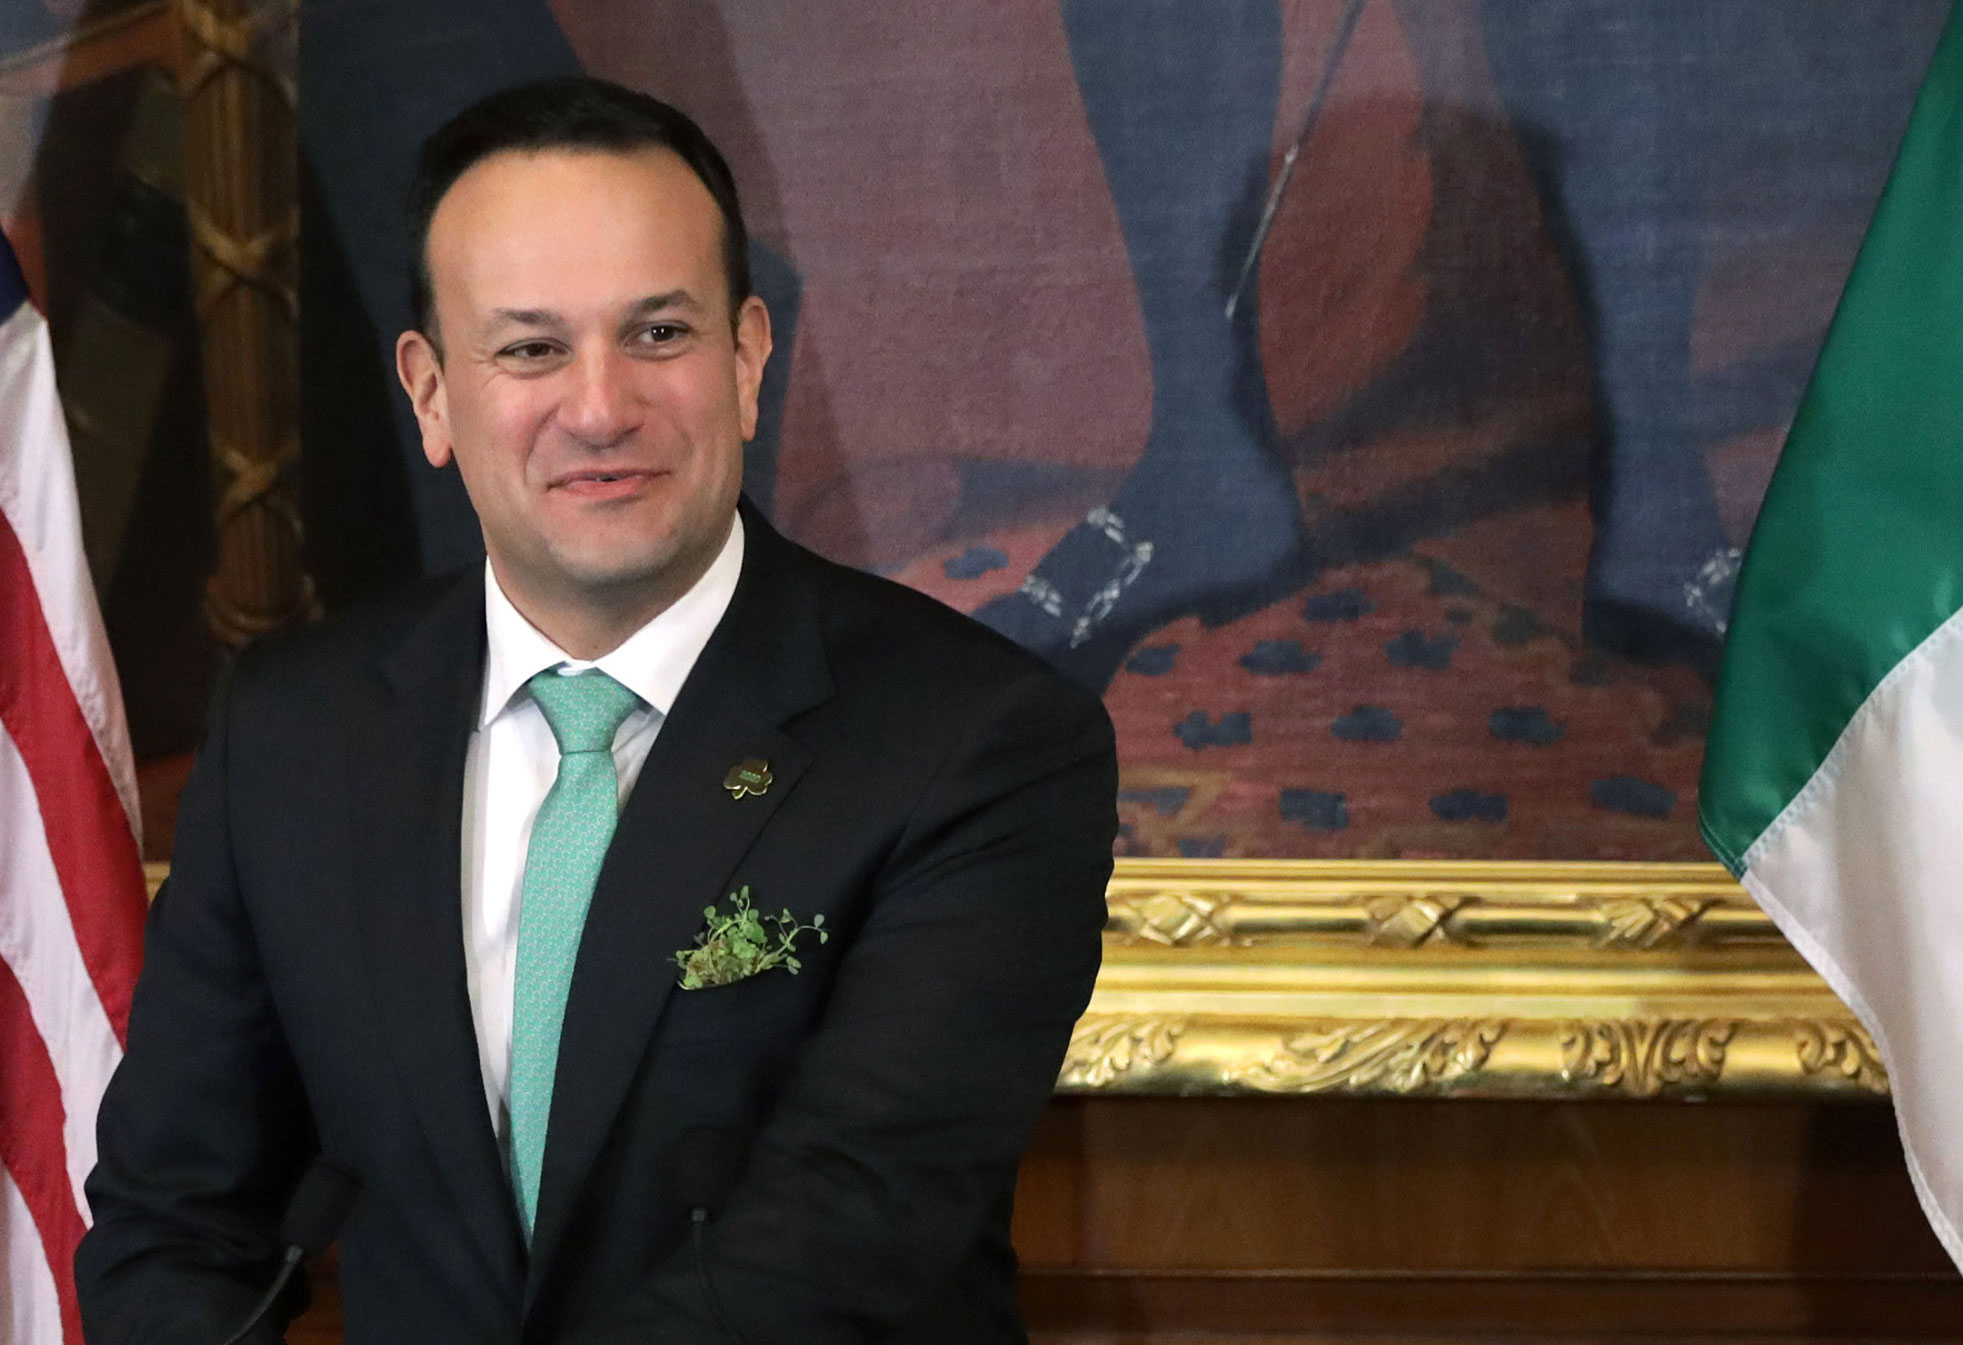 Irish Taoiseach Leo Varadkar speaks during the annual Friends of Ireland luncheon at the US Capitol on March 12 in Washington.